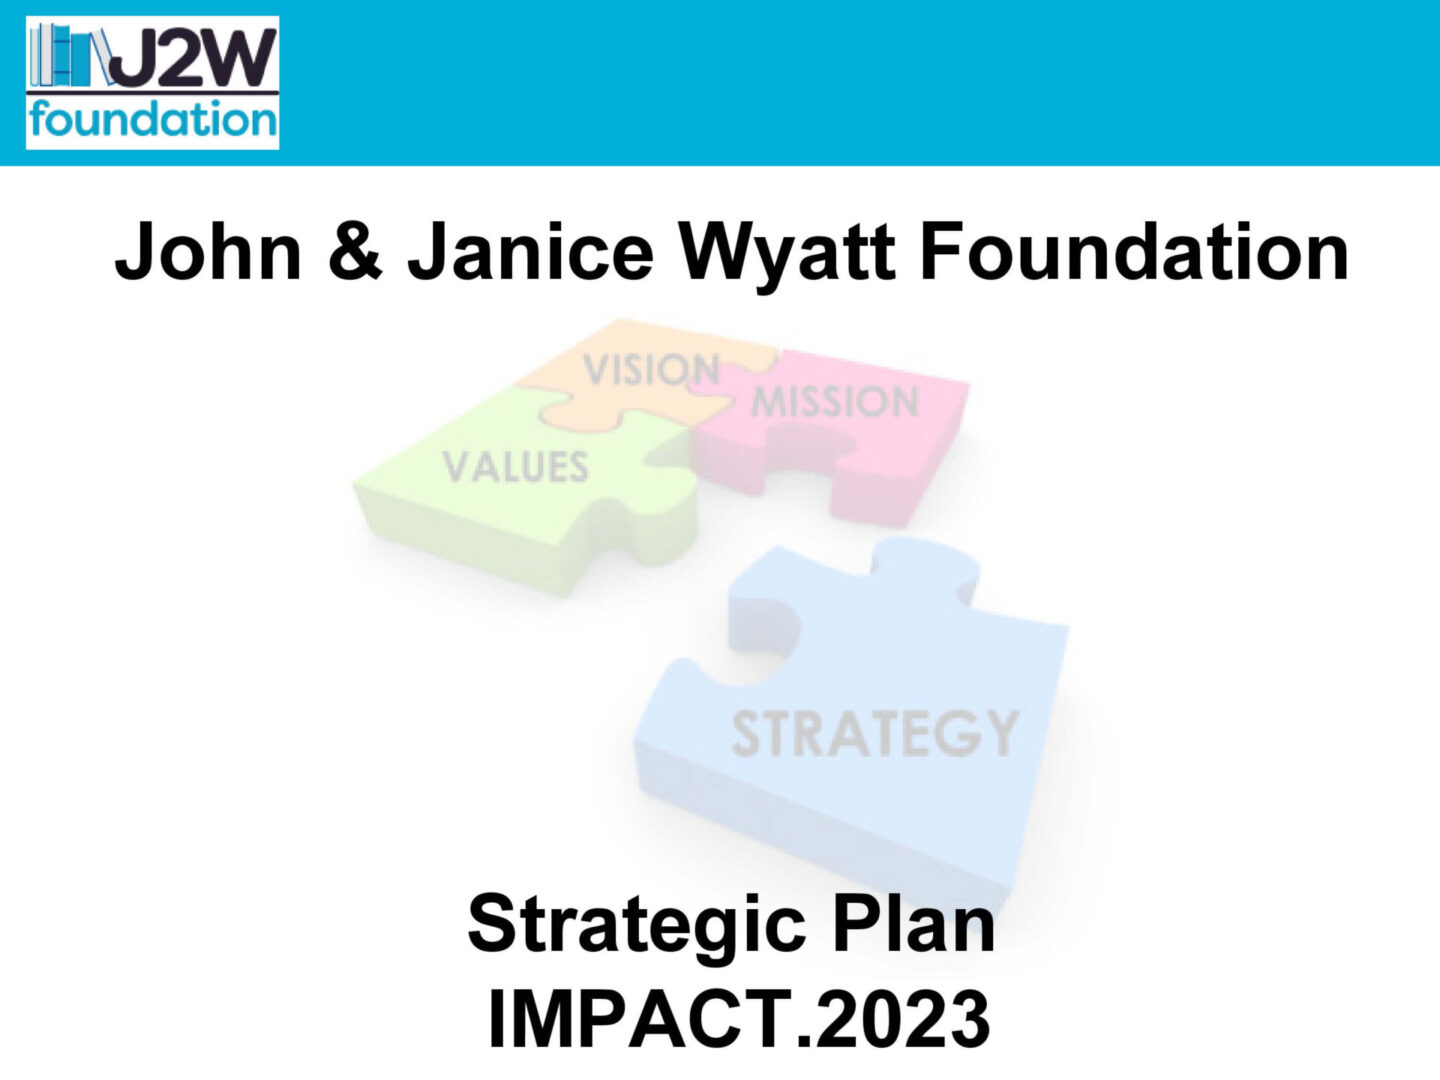 John & Janice Wyatt Foundation banner with colored puzzles